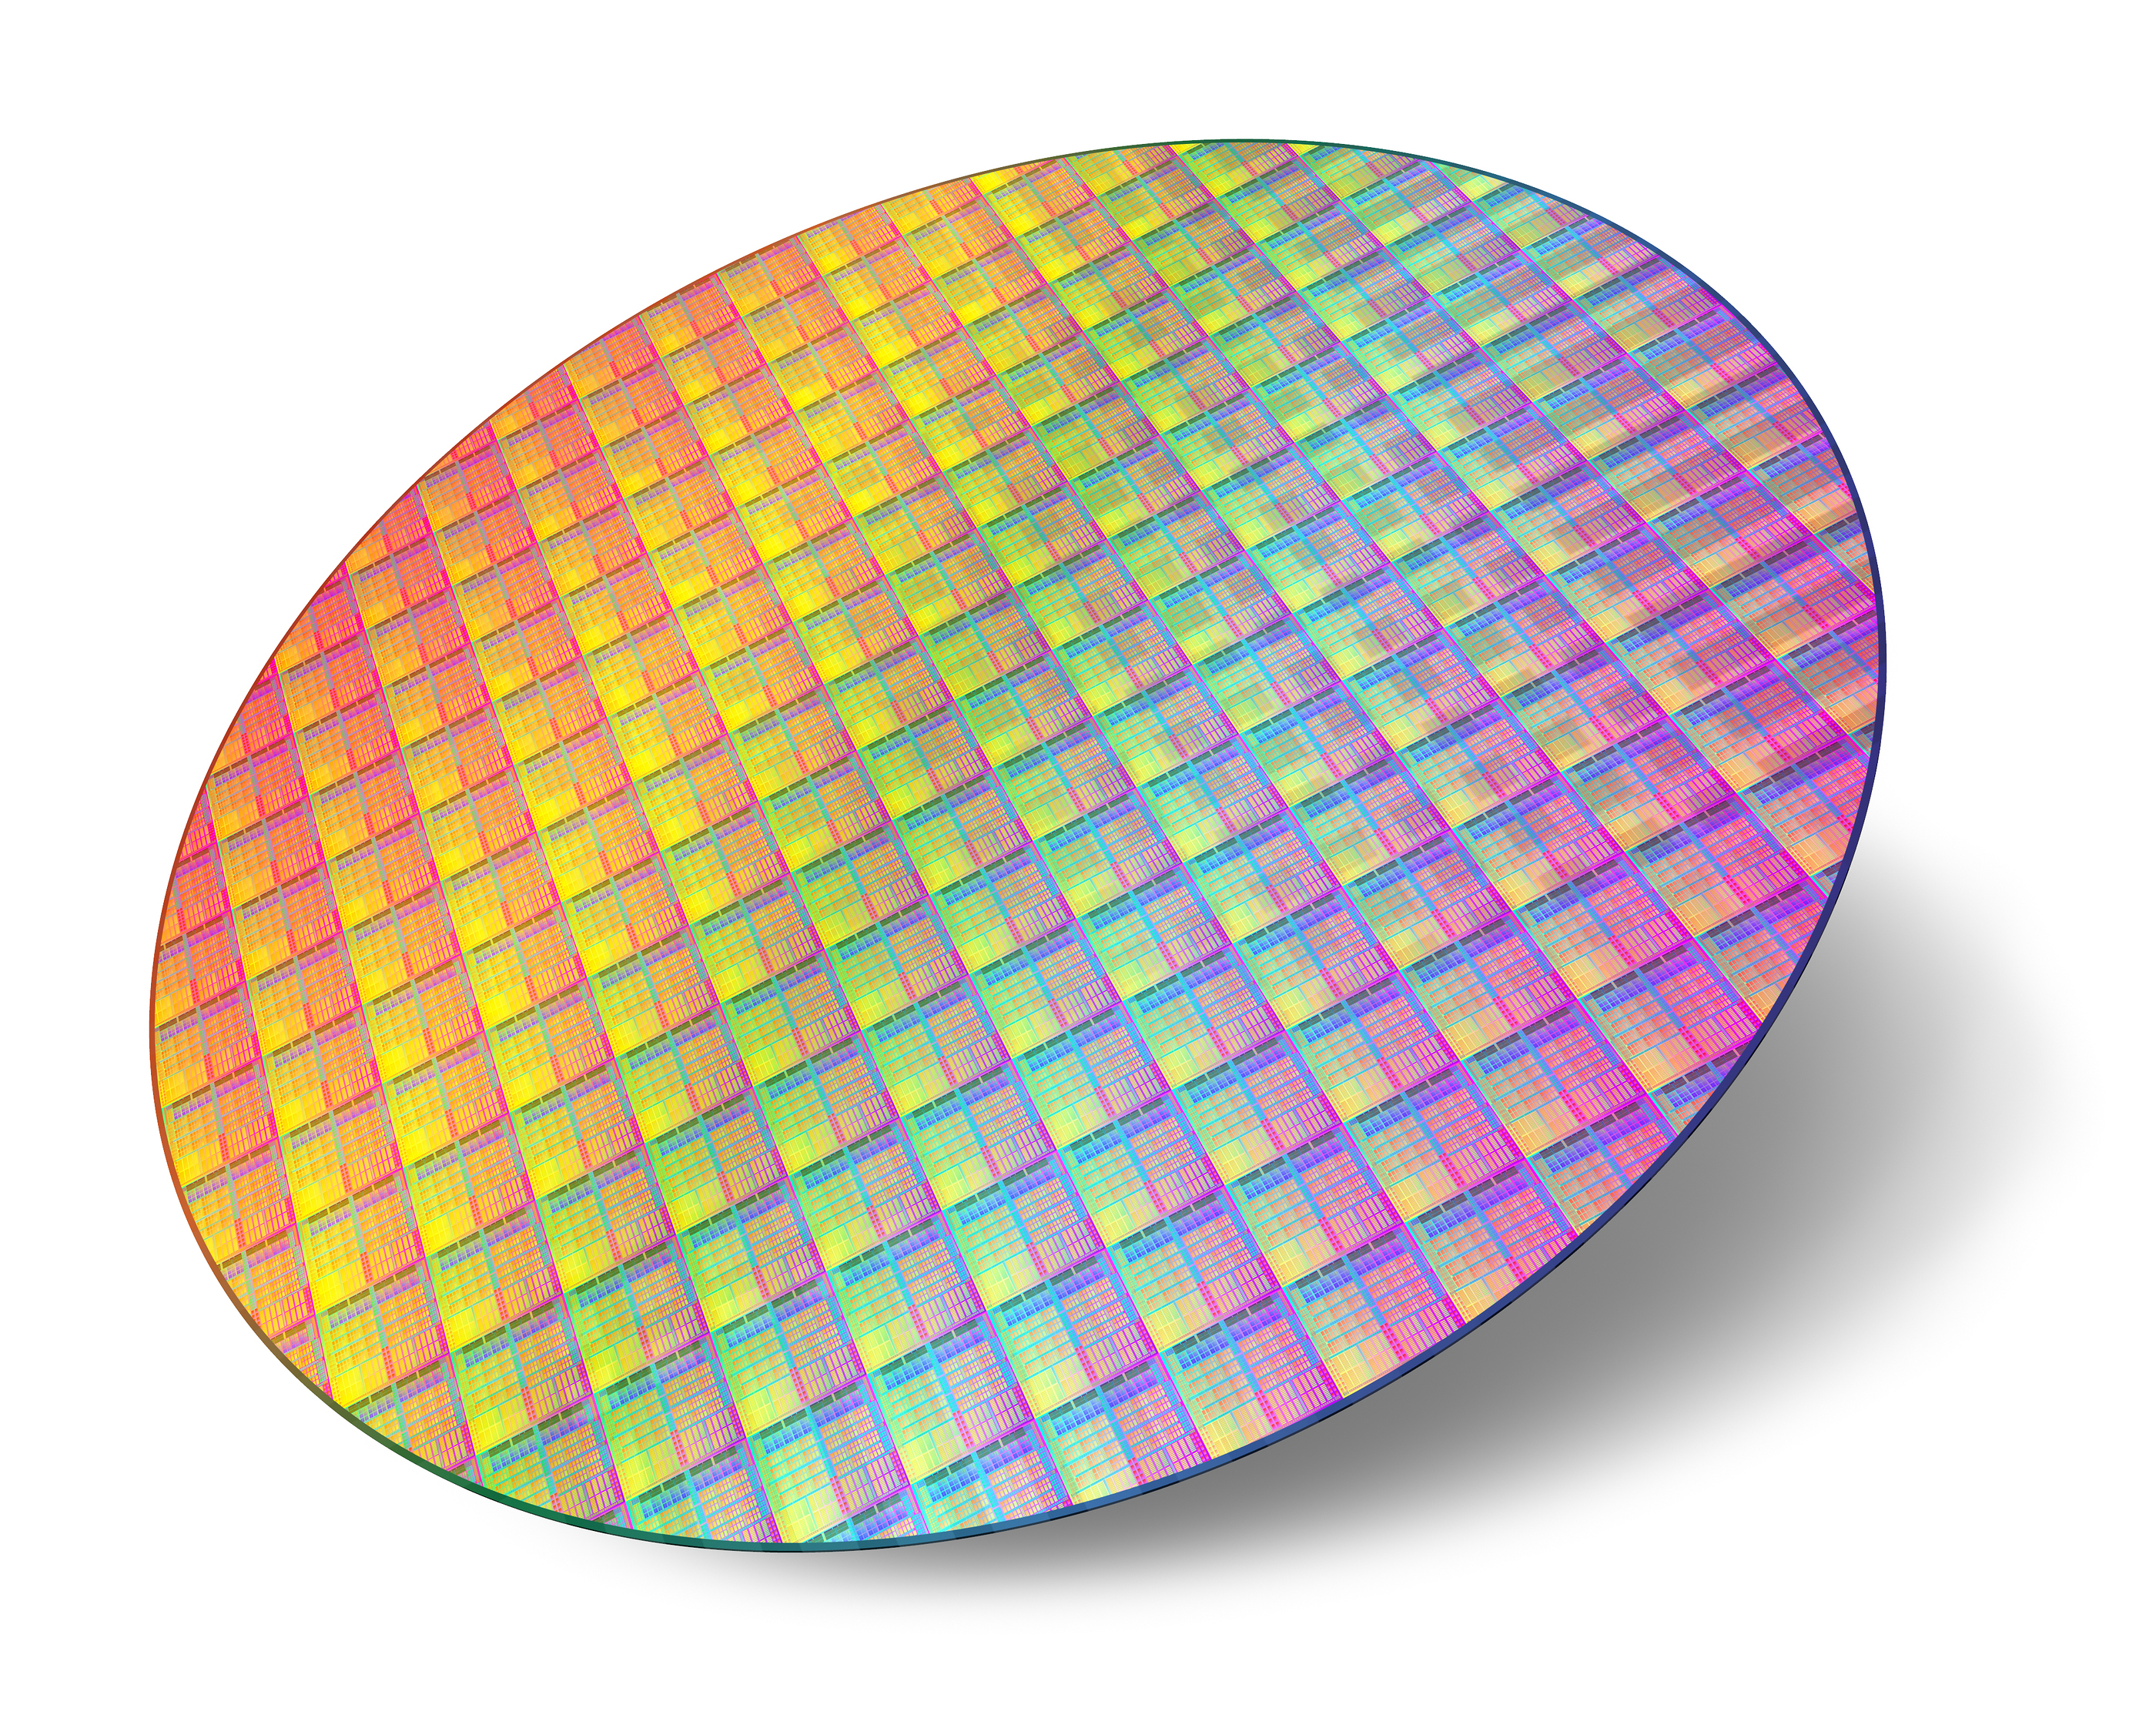 Silicon wafer with processors